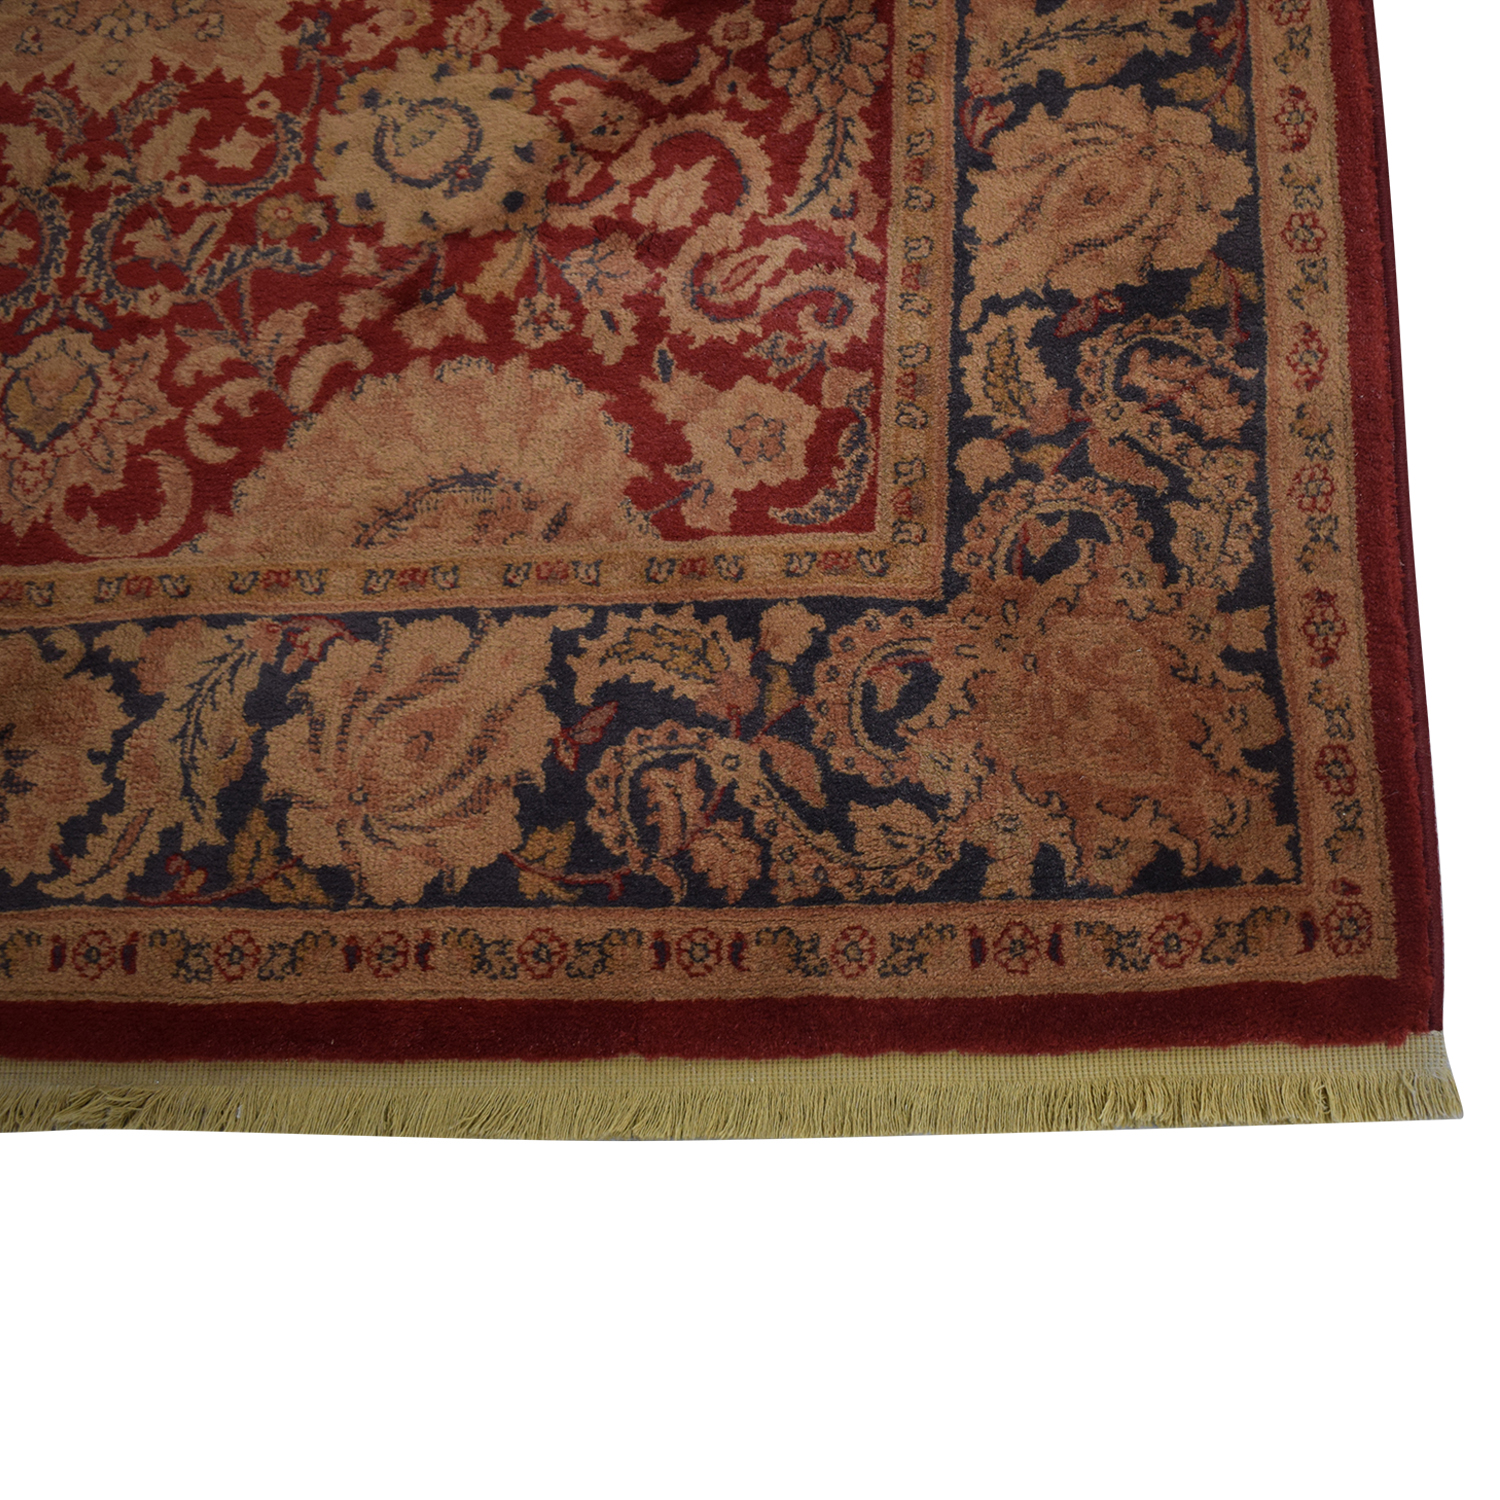 Osta Carpets Osta Carpets Belgian Wool Tibetan-Inspired Rug coupon